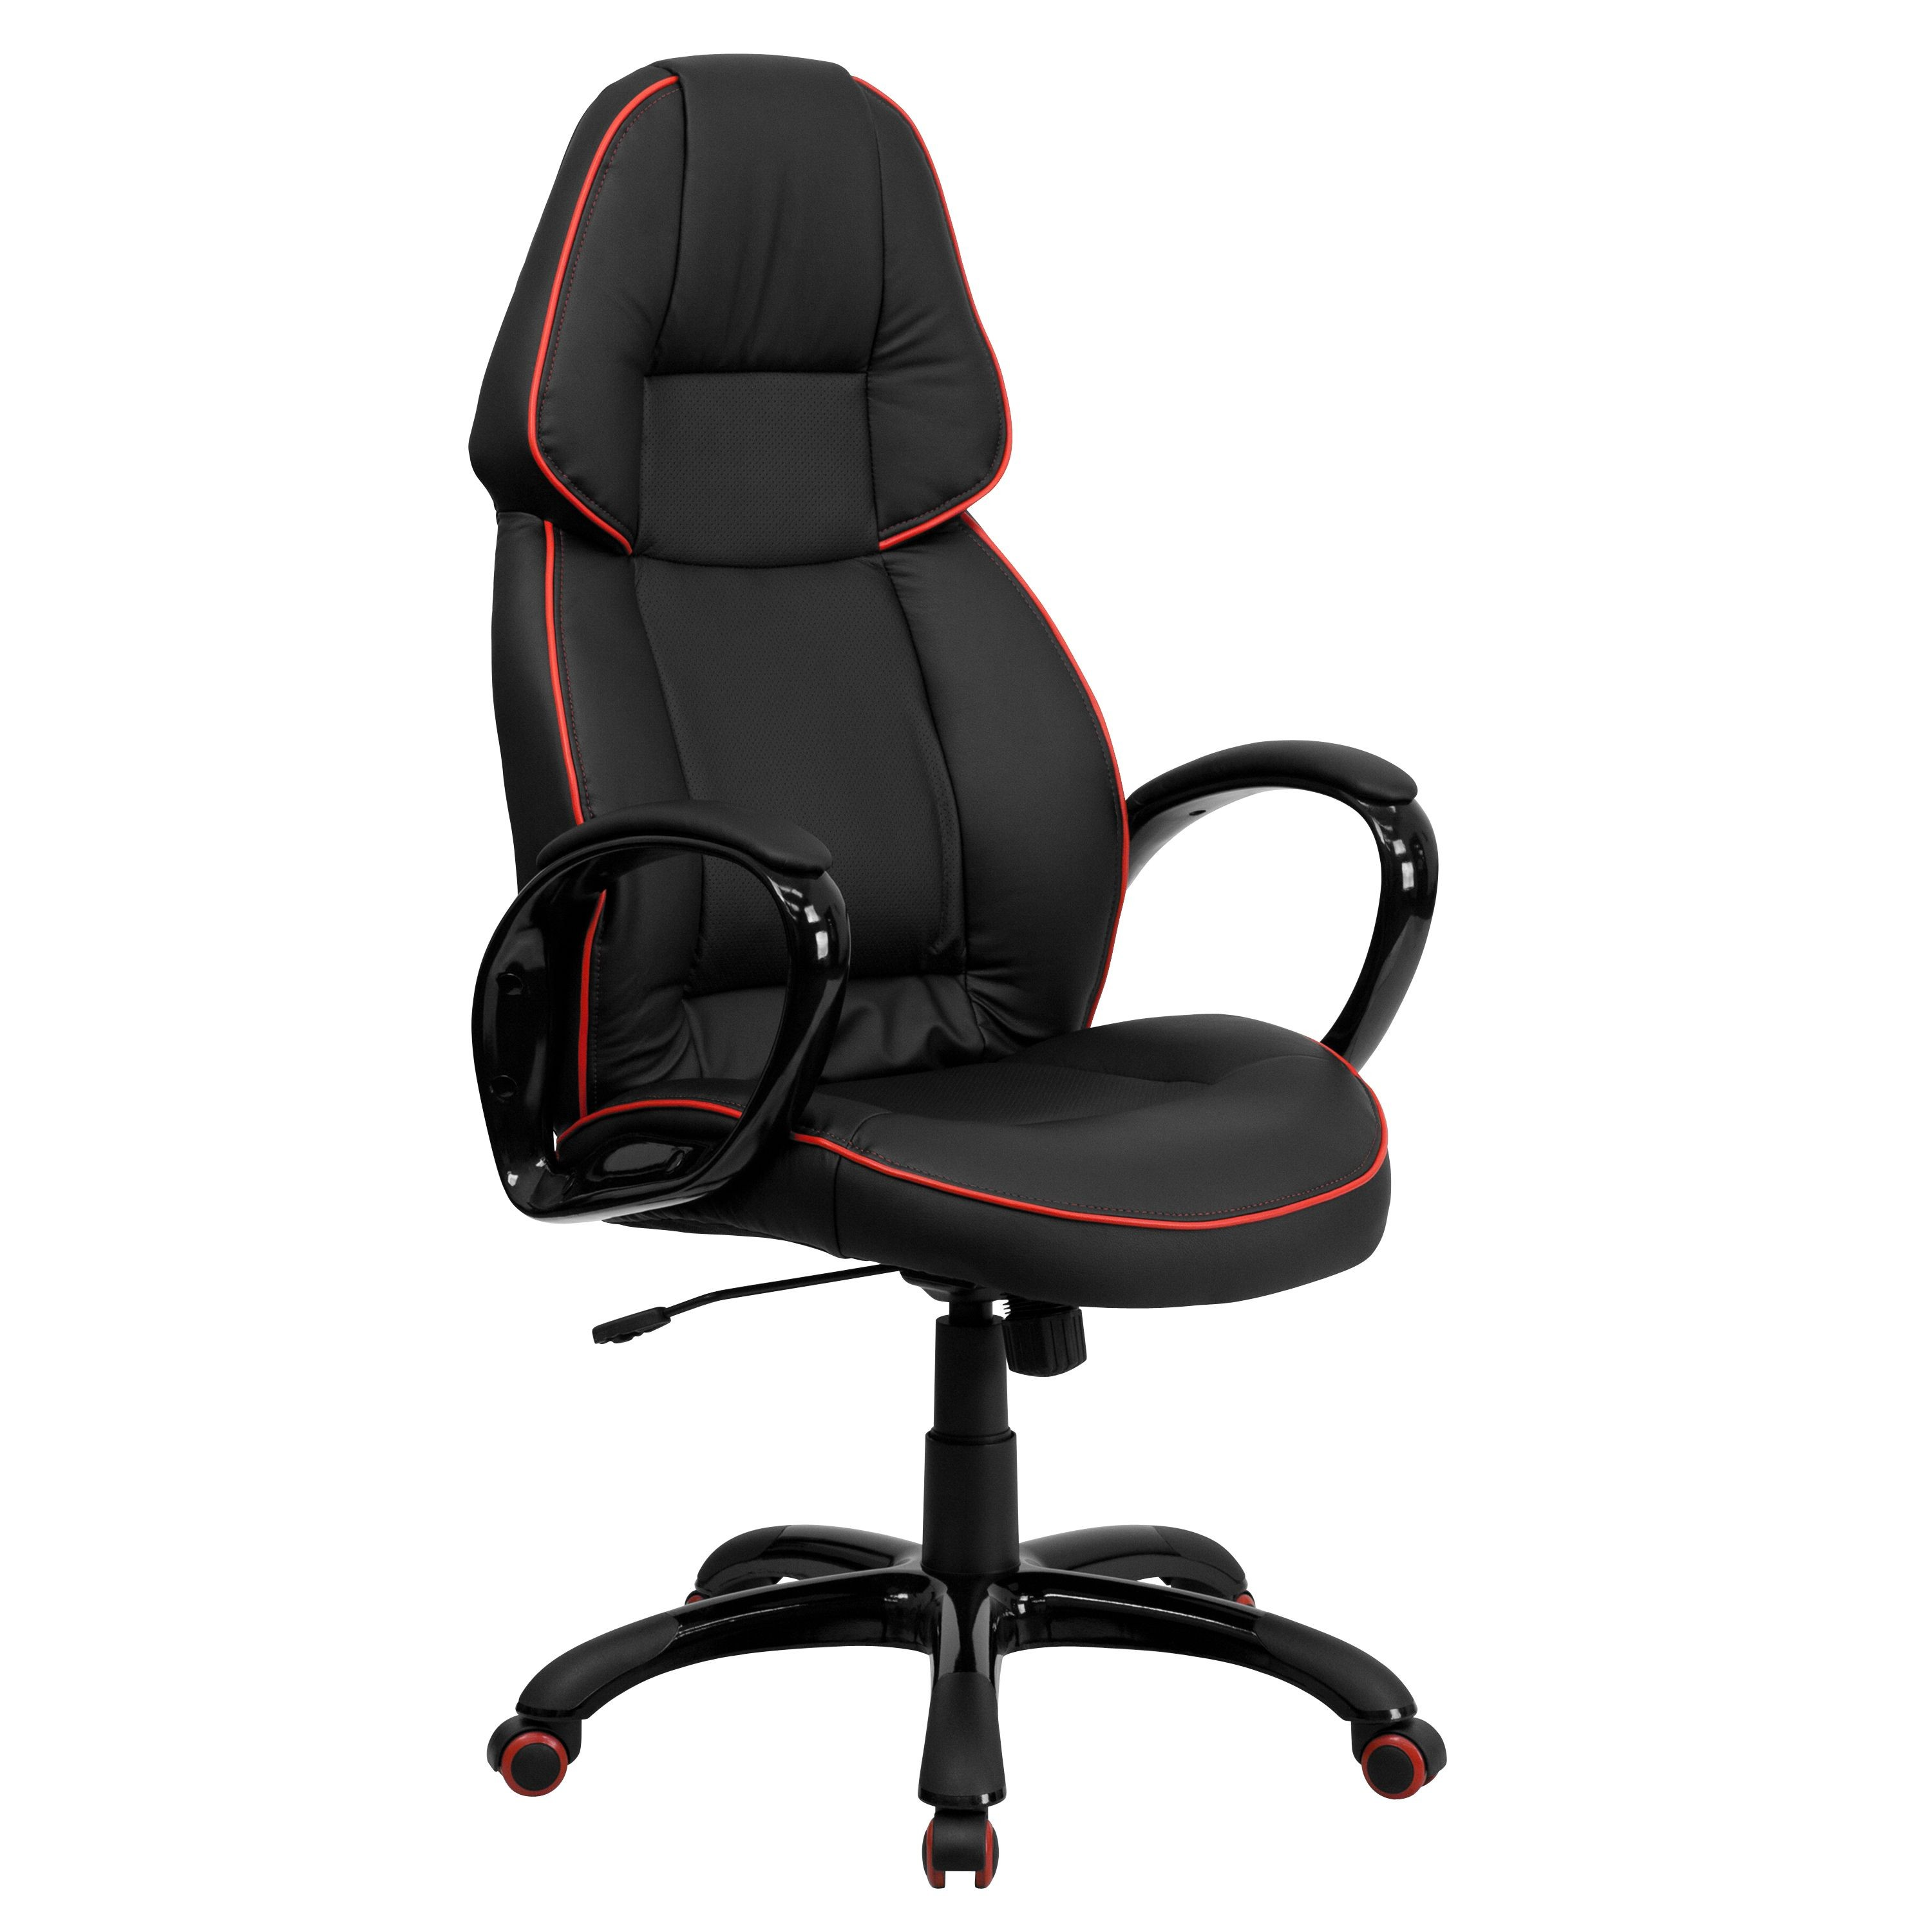 Flash Furniture CH-CX0248H01-VEN-GG High Back Black Vinyl Executive Office Chair with Red Pipeline Border